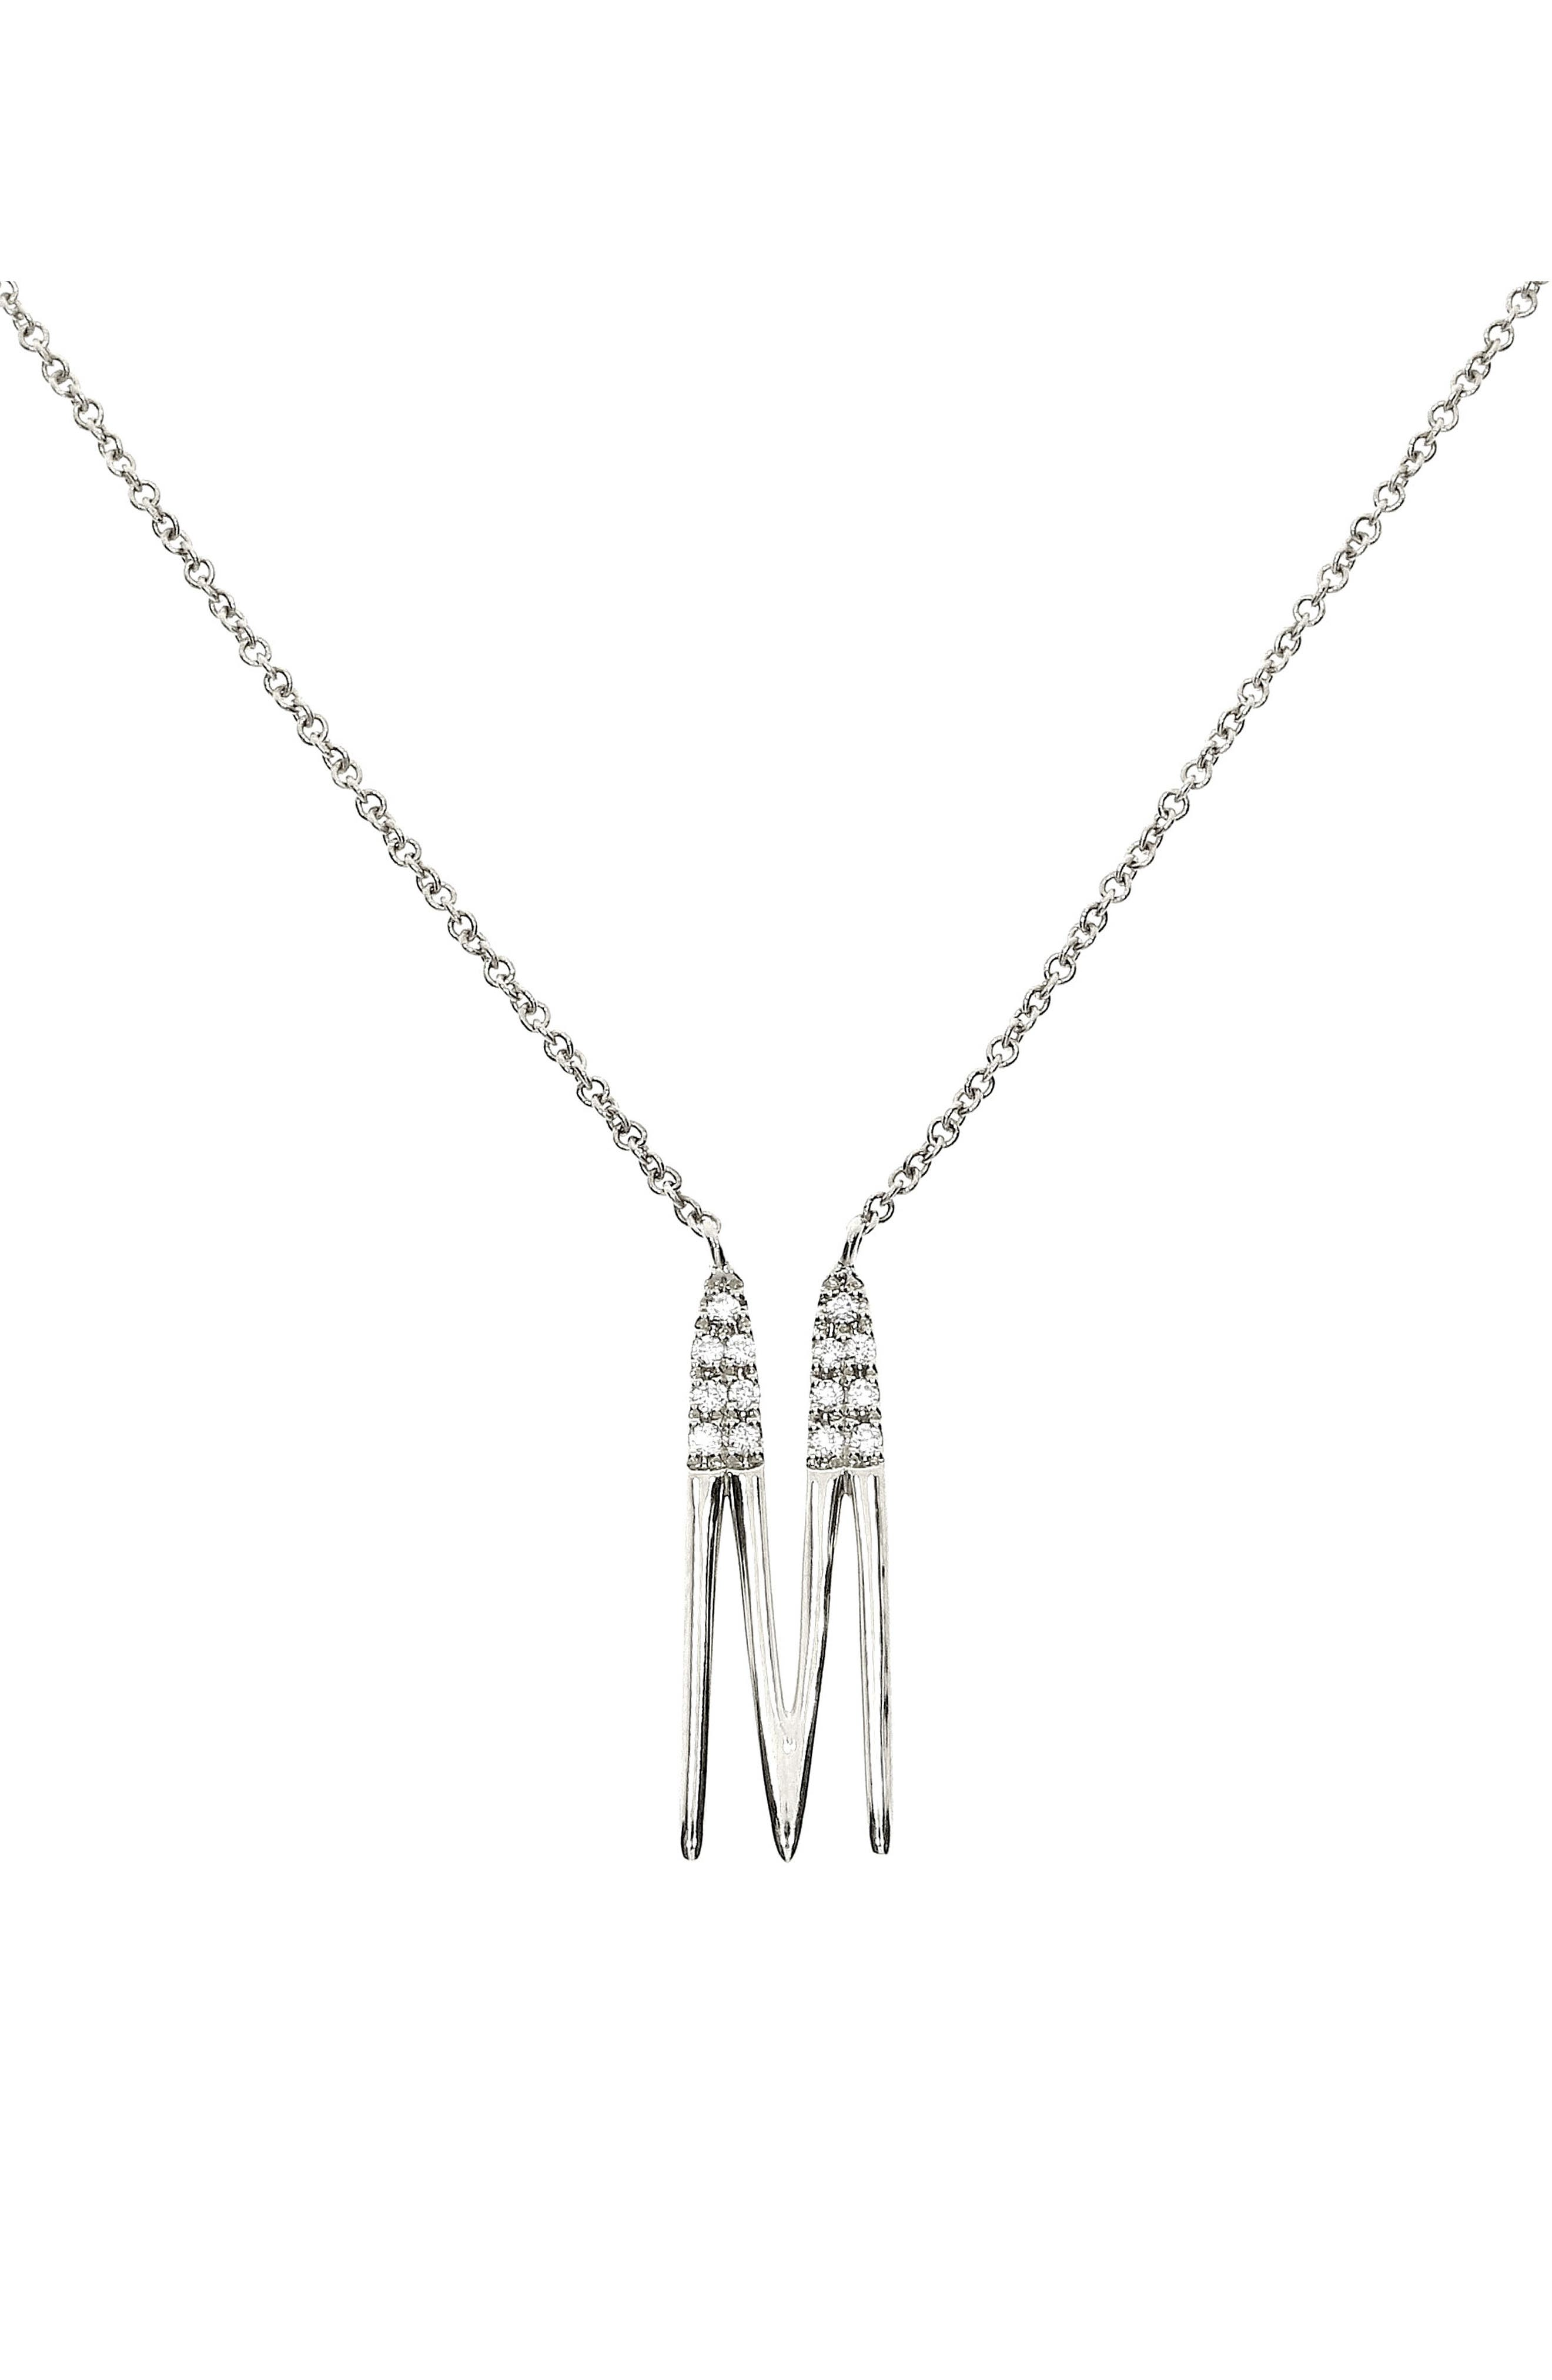 An elongated initial handcrafted in 18-karat gold is sprinkled with glittering white diamonds in this meaningful pendant necklace that makes a great gift. Style Name: Bony Levy Diamond Initial Pendant Necklace (Nordstrom Exclusive). Style Number: 5947130. Available in stores.